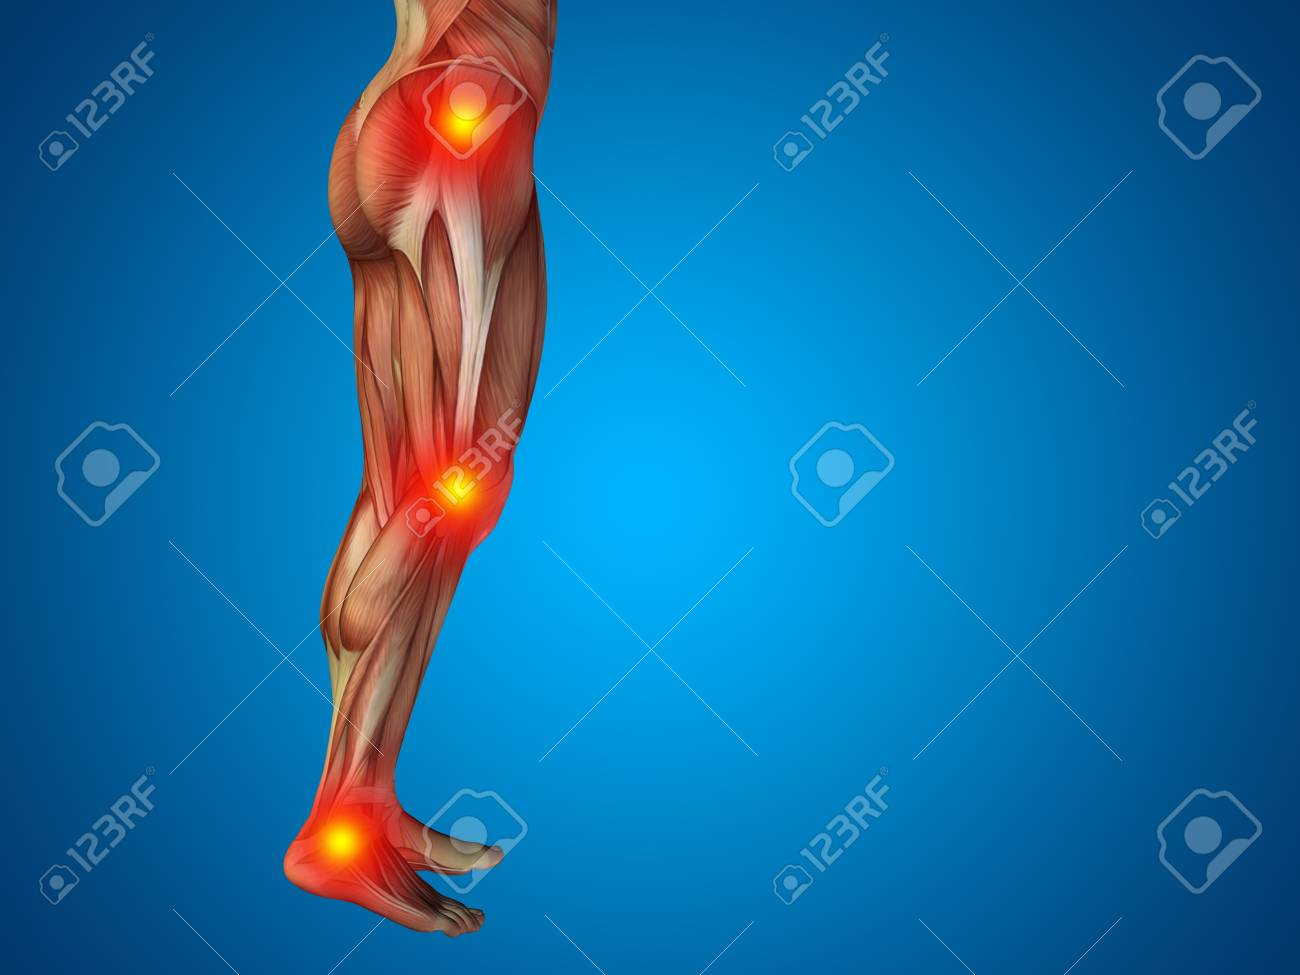 Conceptual Human Body Anatomy Articular Pain Blue Background Stock